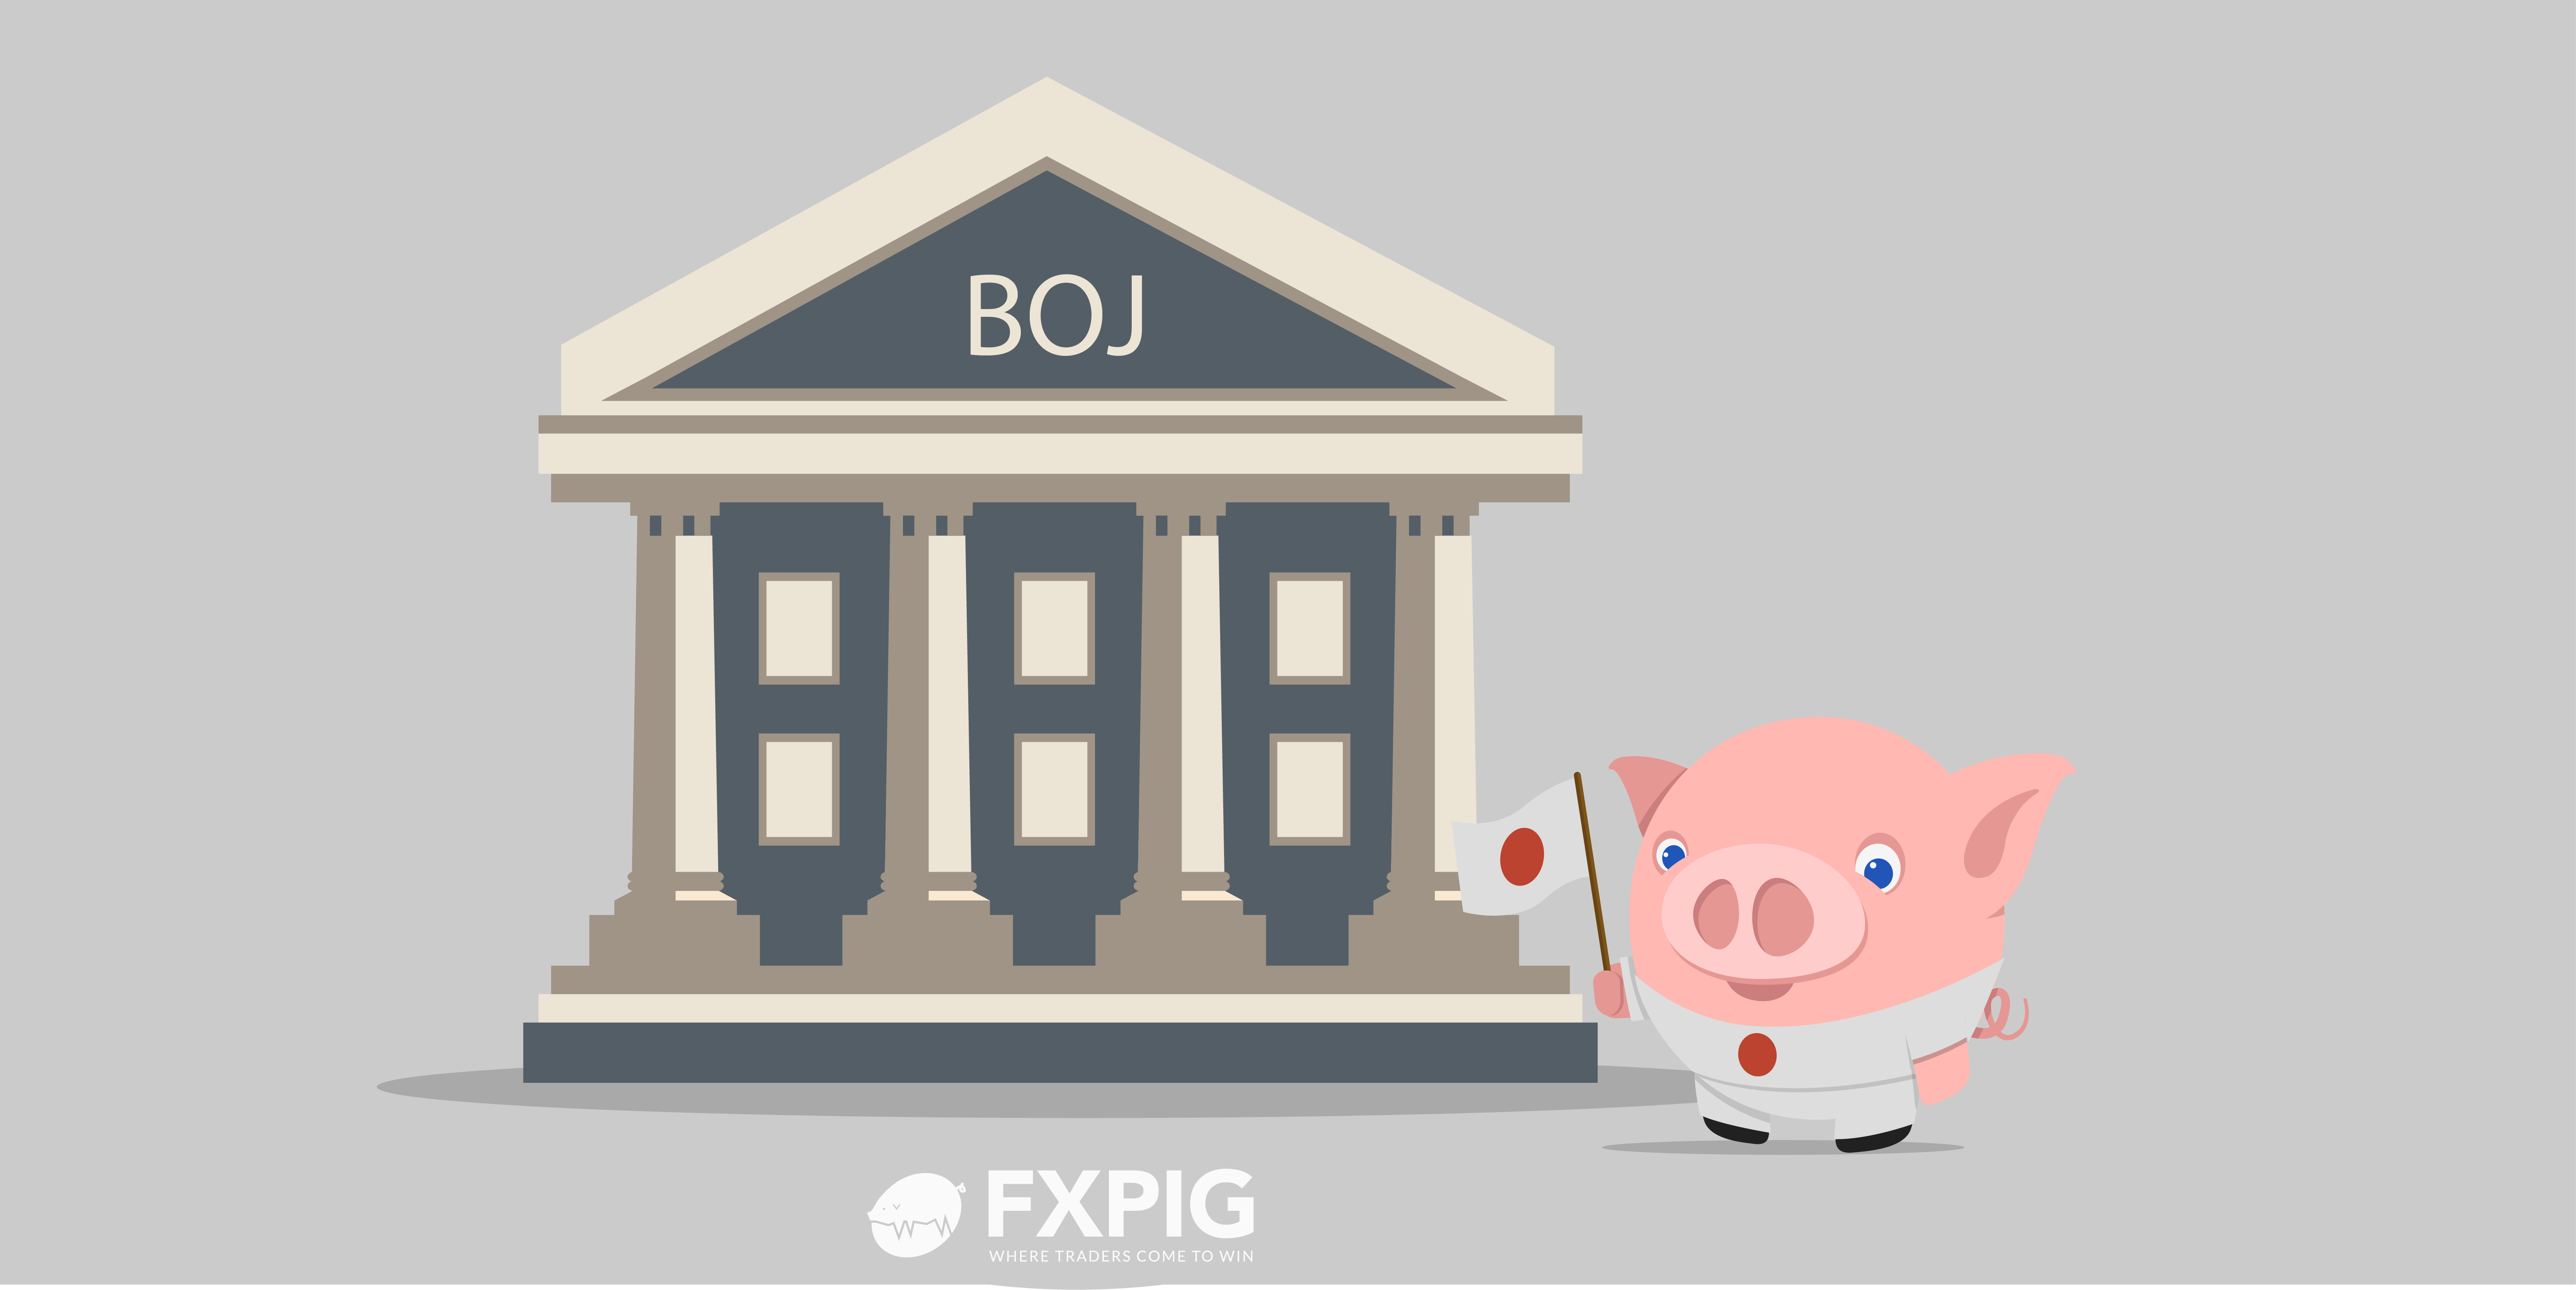 BoJ_expected to ease_further_Forex_FXPIG